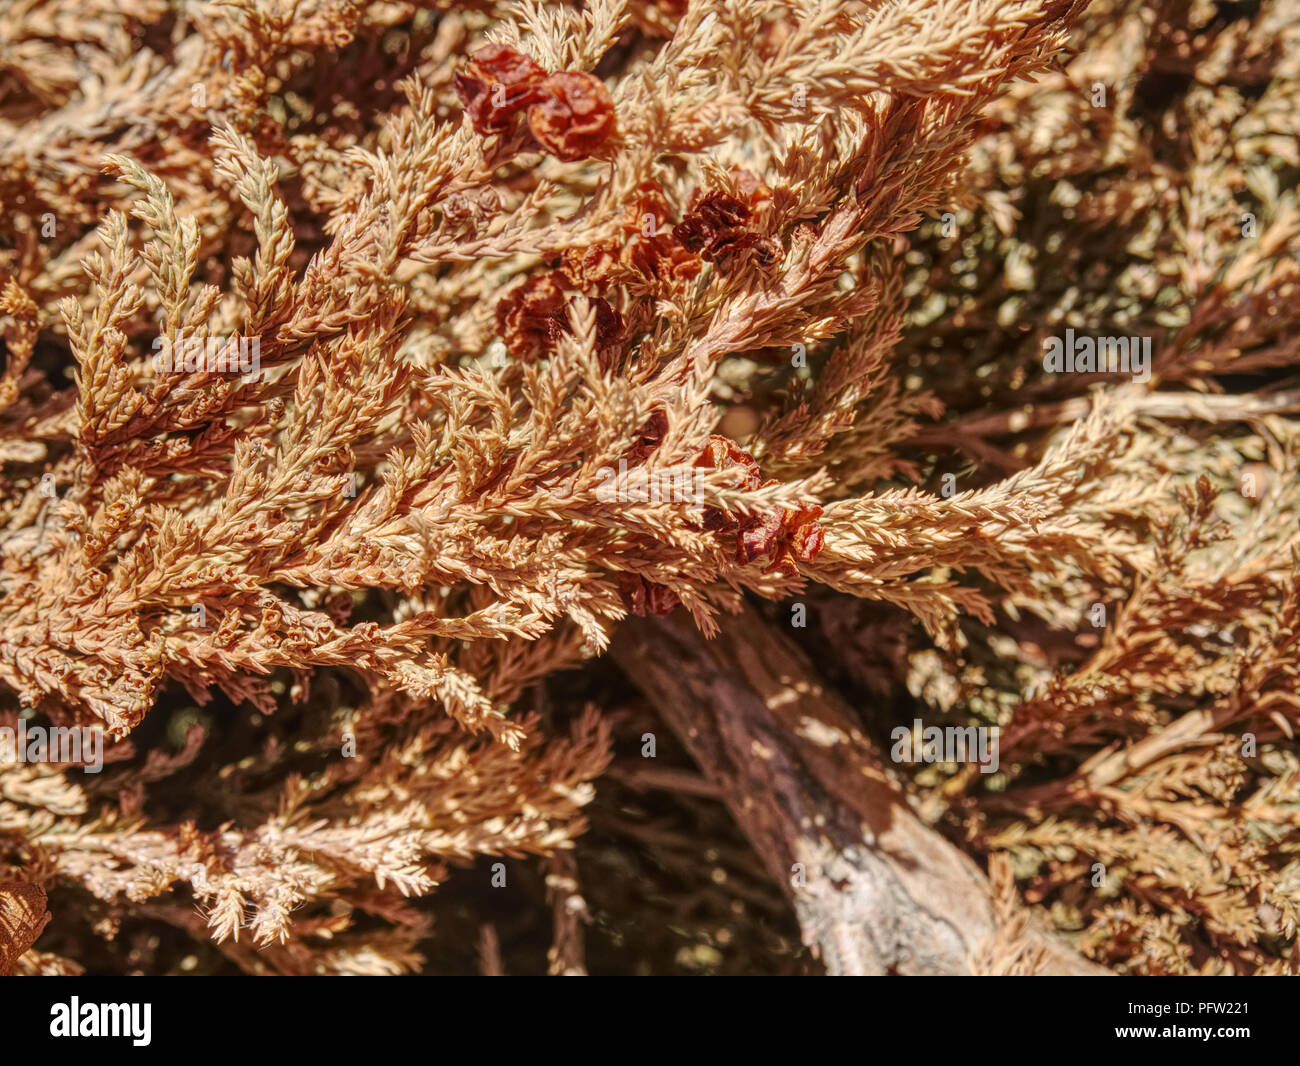 Dry dead thuja. Tree in park dryied consequence of extreme hot summer without any rain. - Stock Image